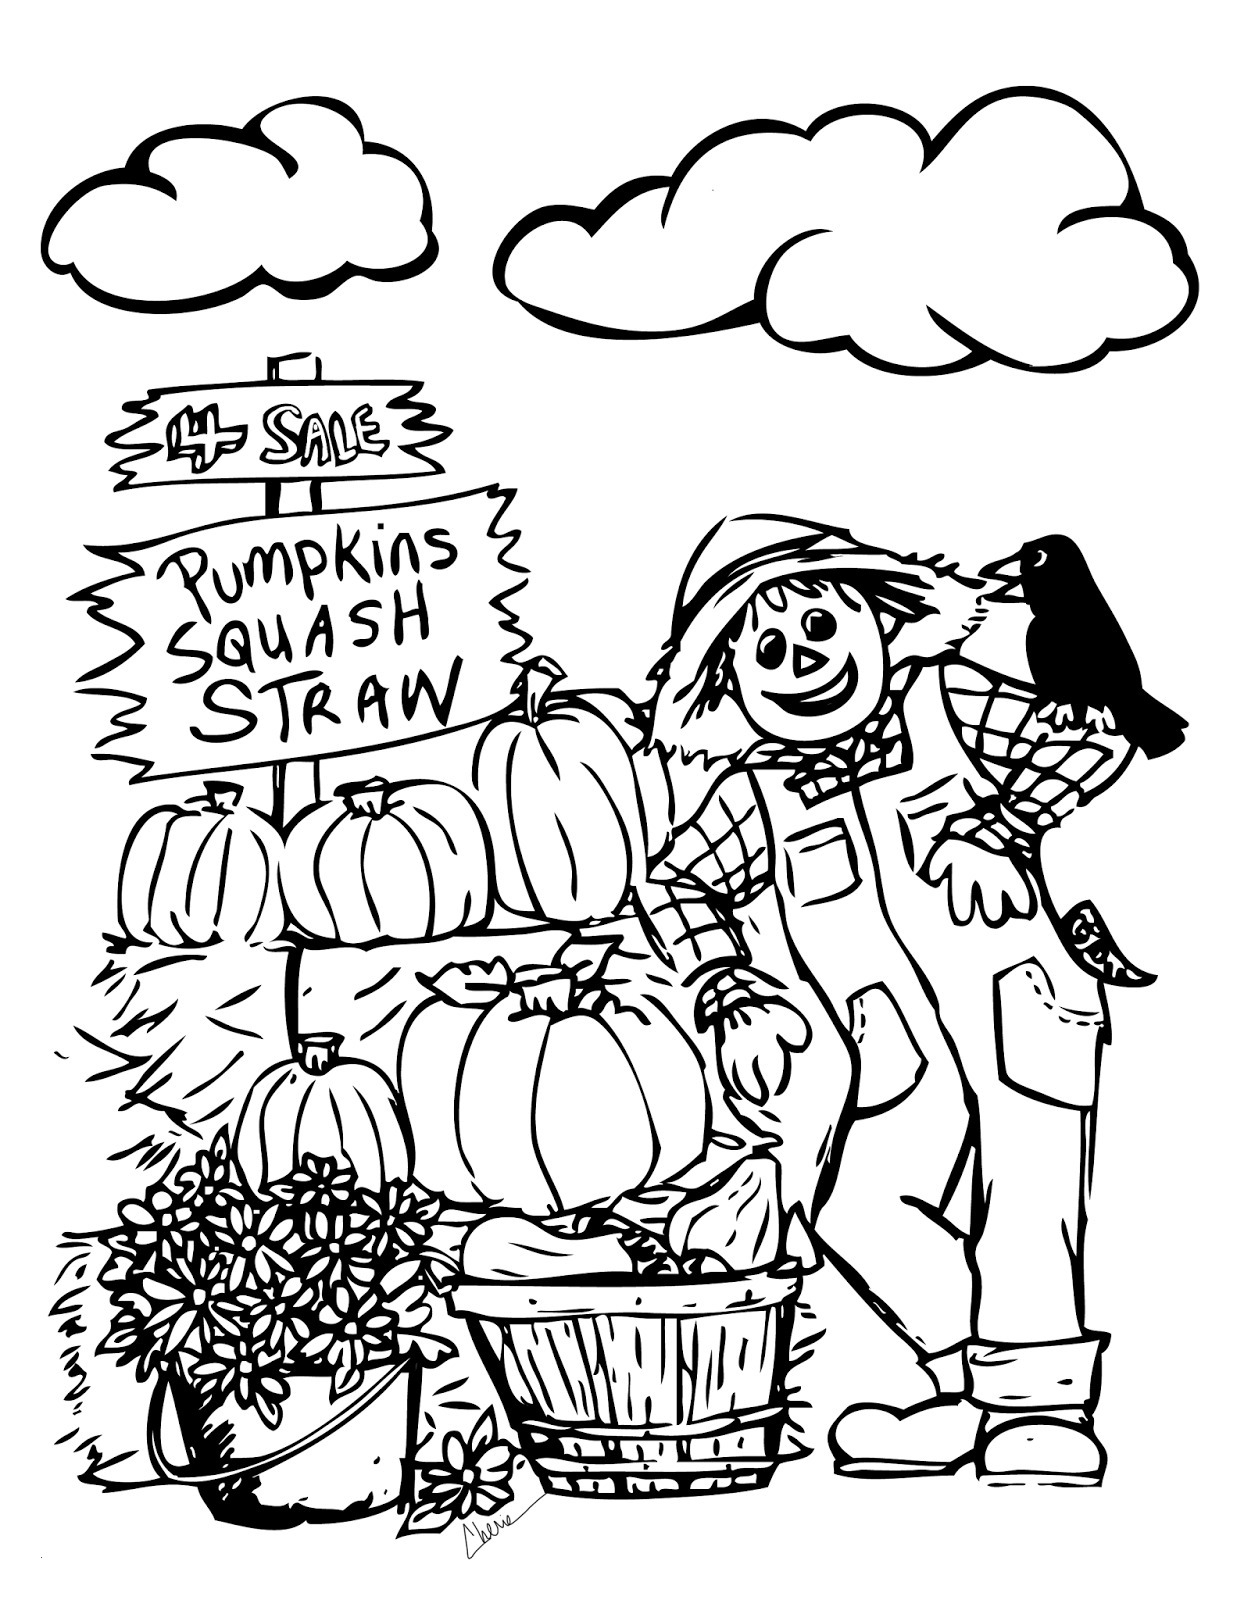 19 Printable Fall Leaves Coloring Pages Download Coloring